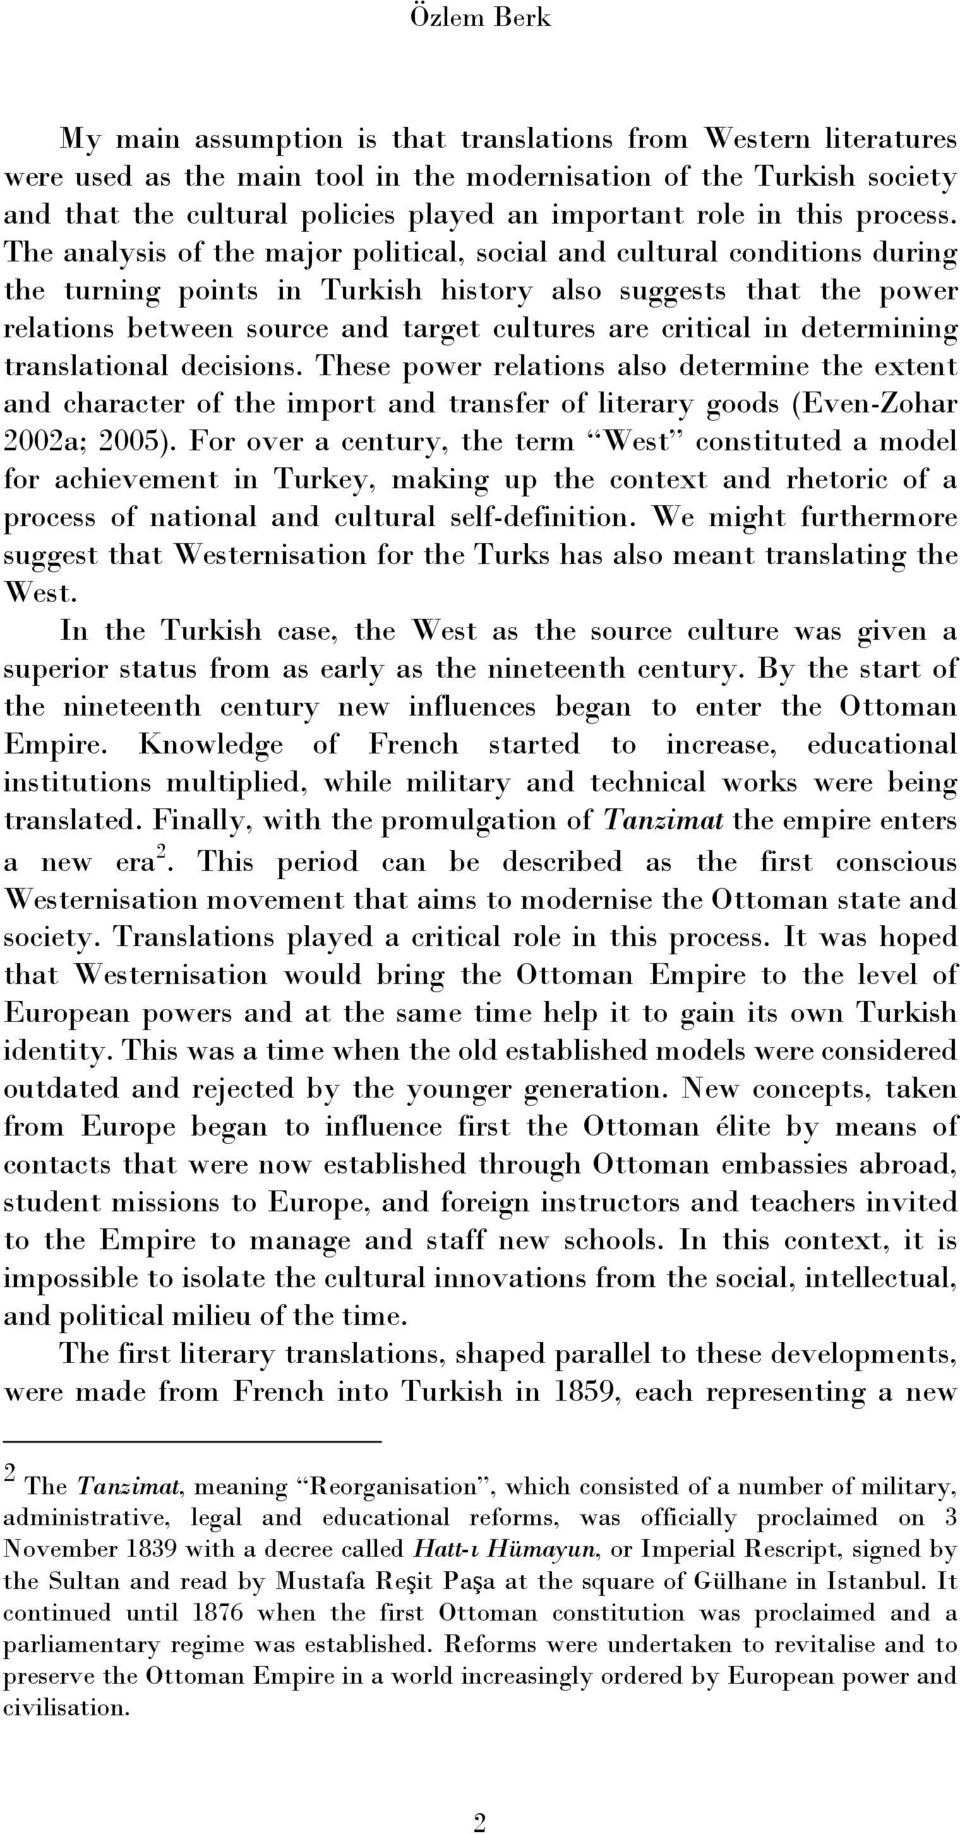 The analysis of the major political, social and cultural conditions during the turning points in Turkish history also suggests that the power relations between source and target cultures are critical